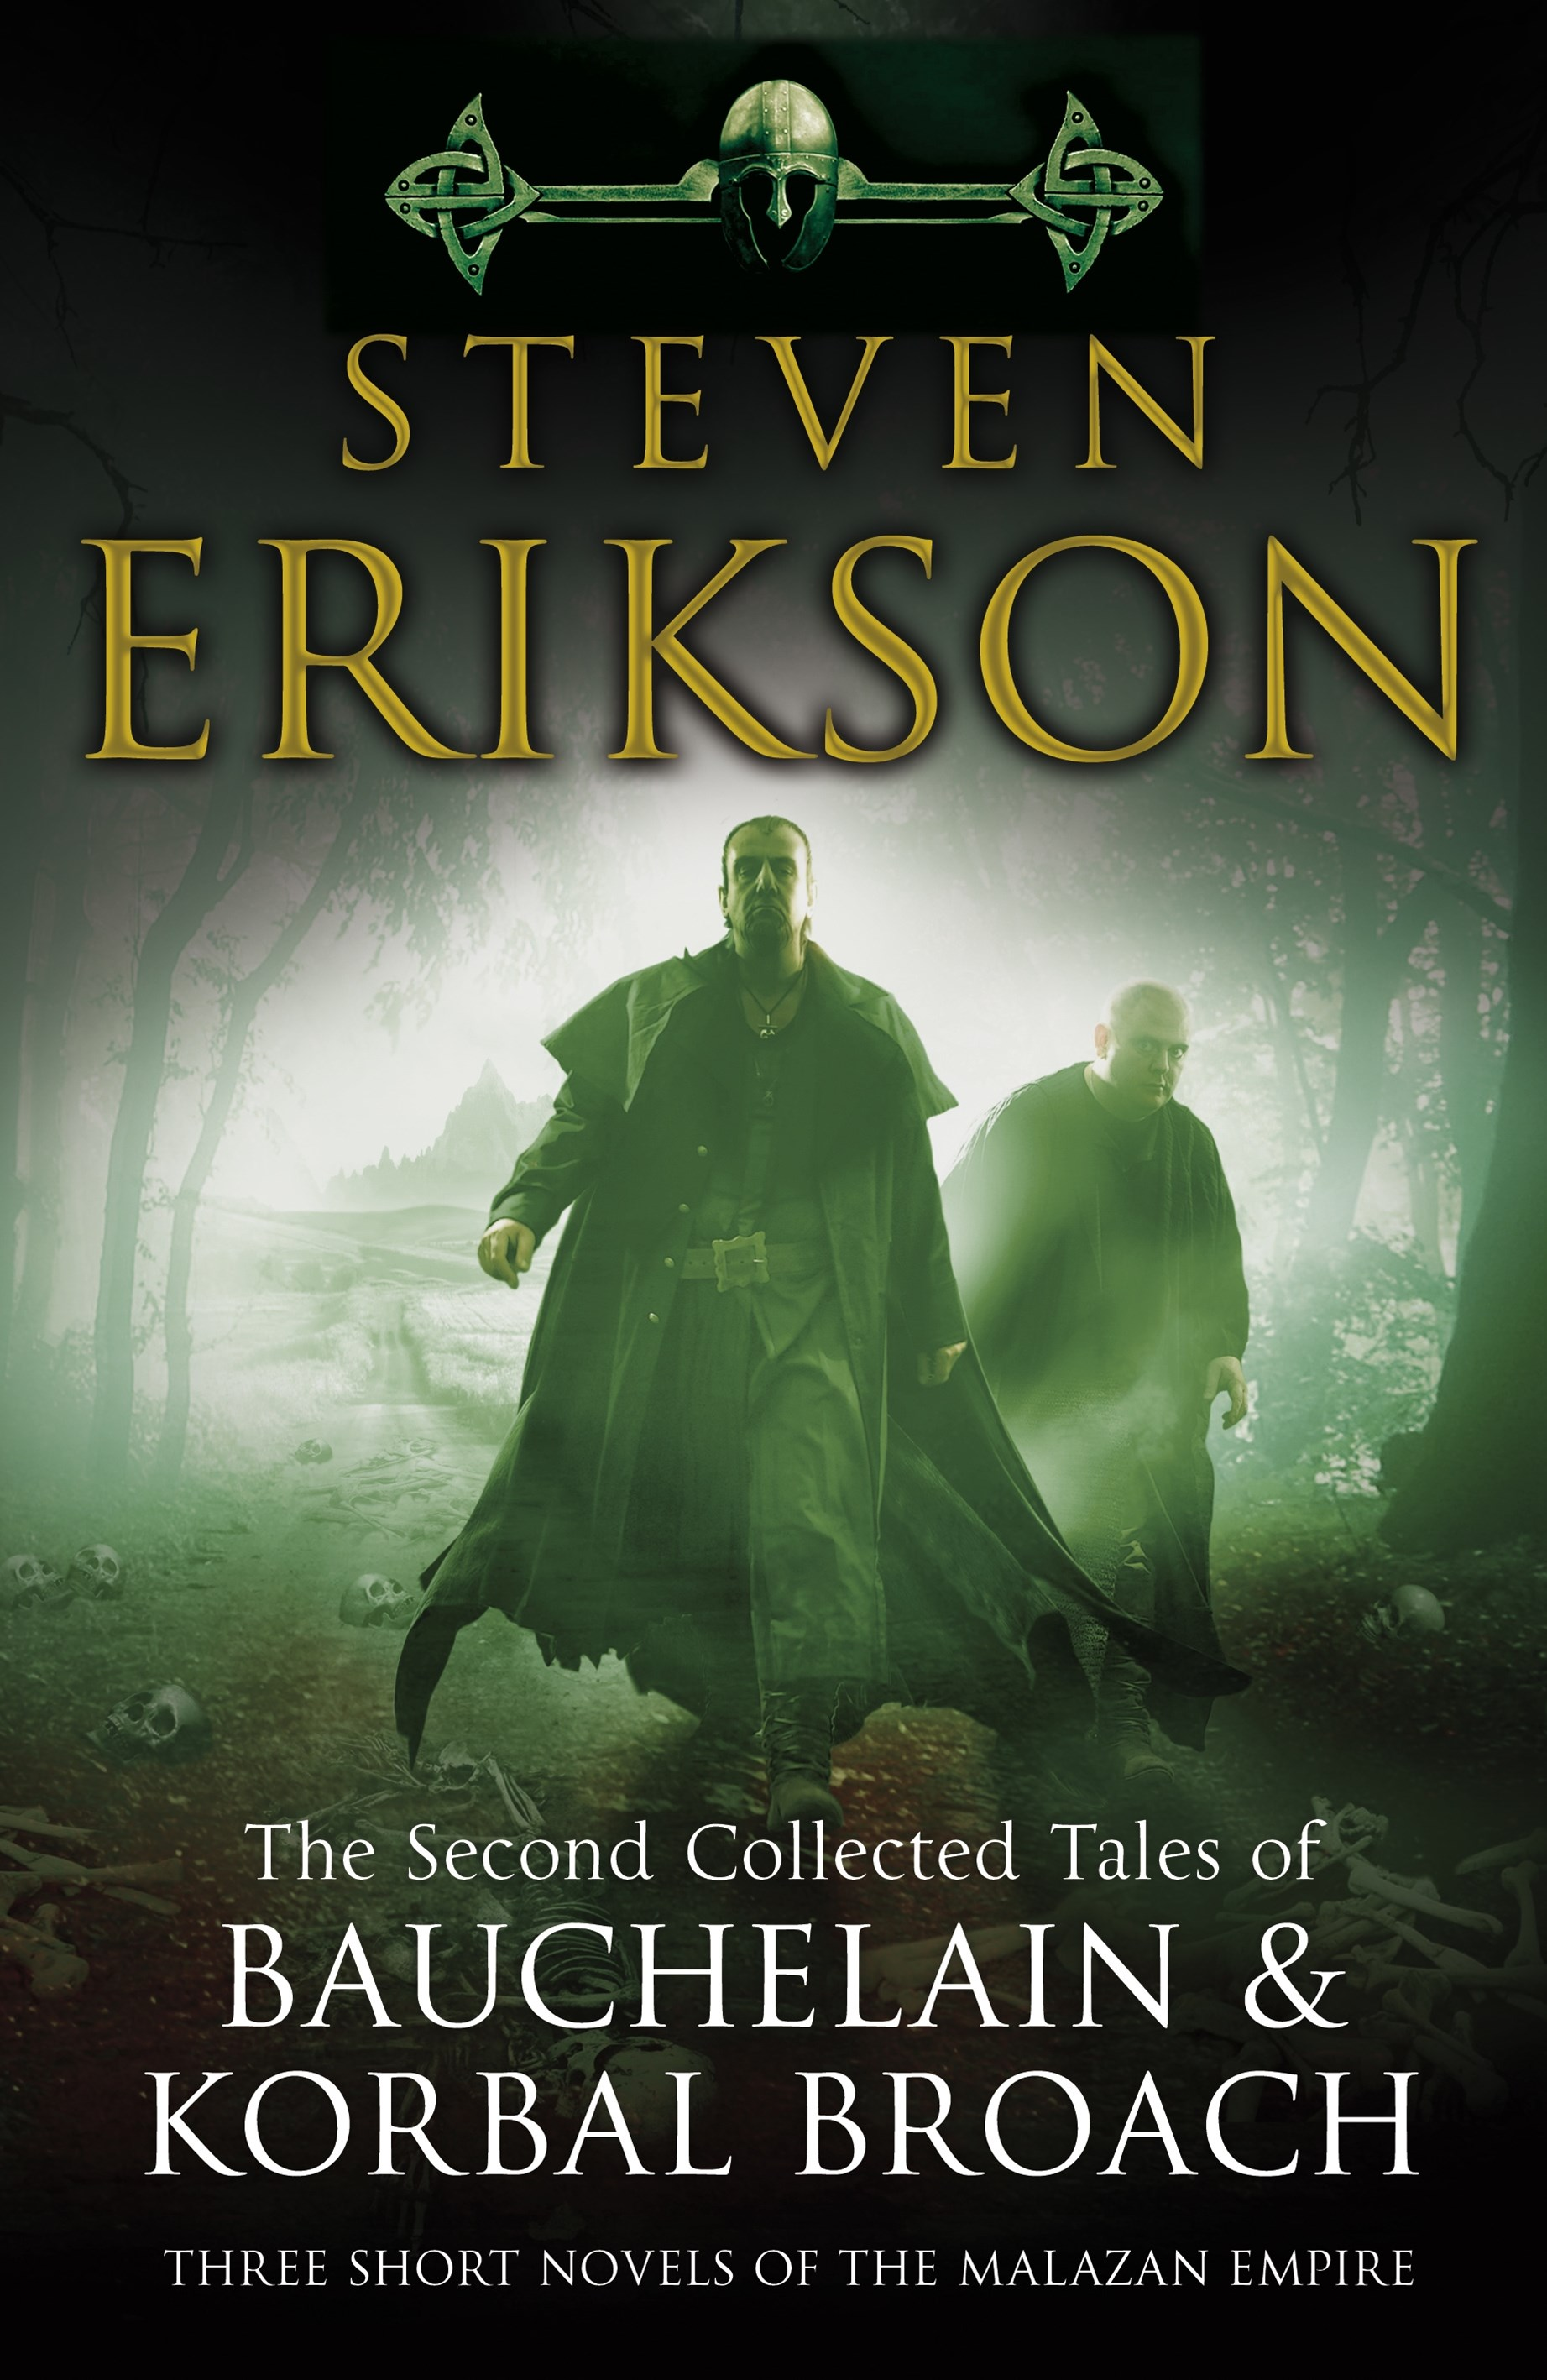 The Second Collected Tales of Bauchelain & Korbal Broach: Three Short Novels of the Malazan Empire